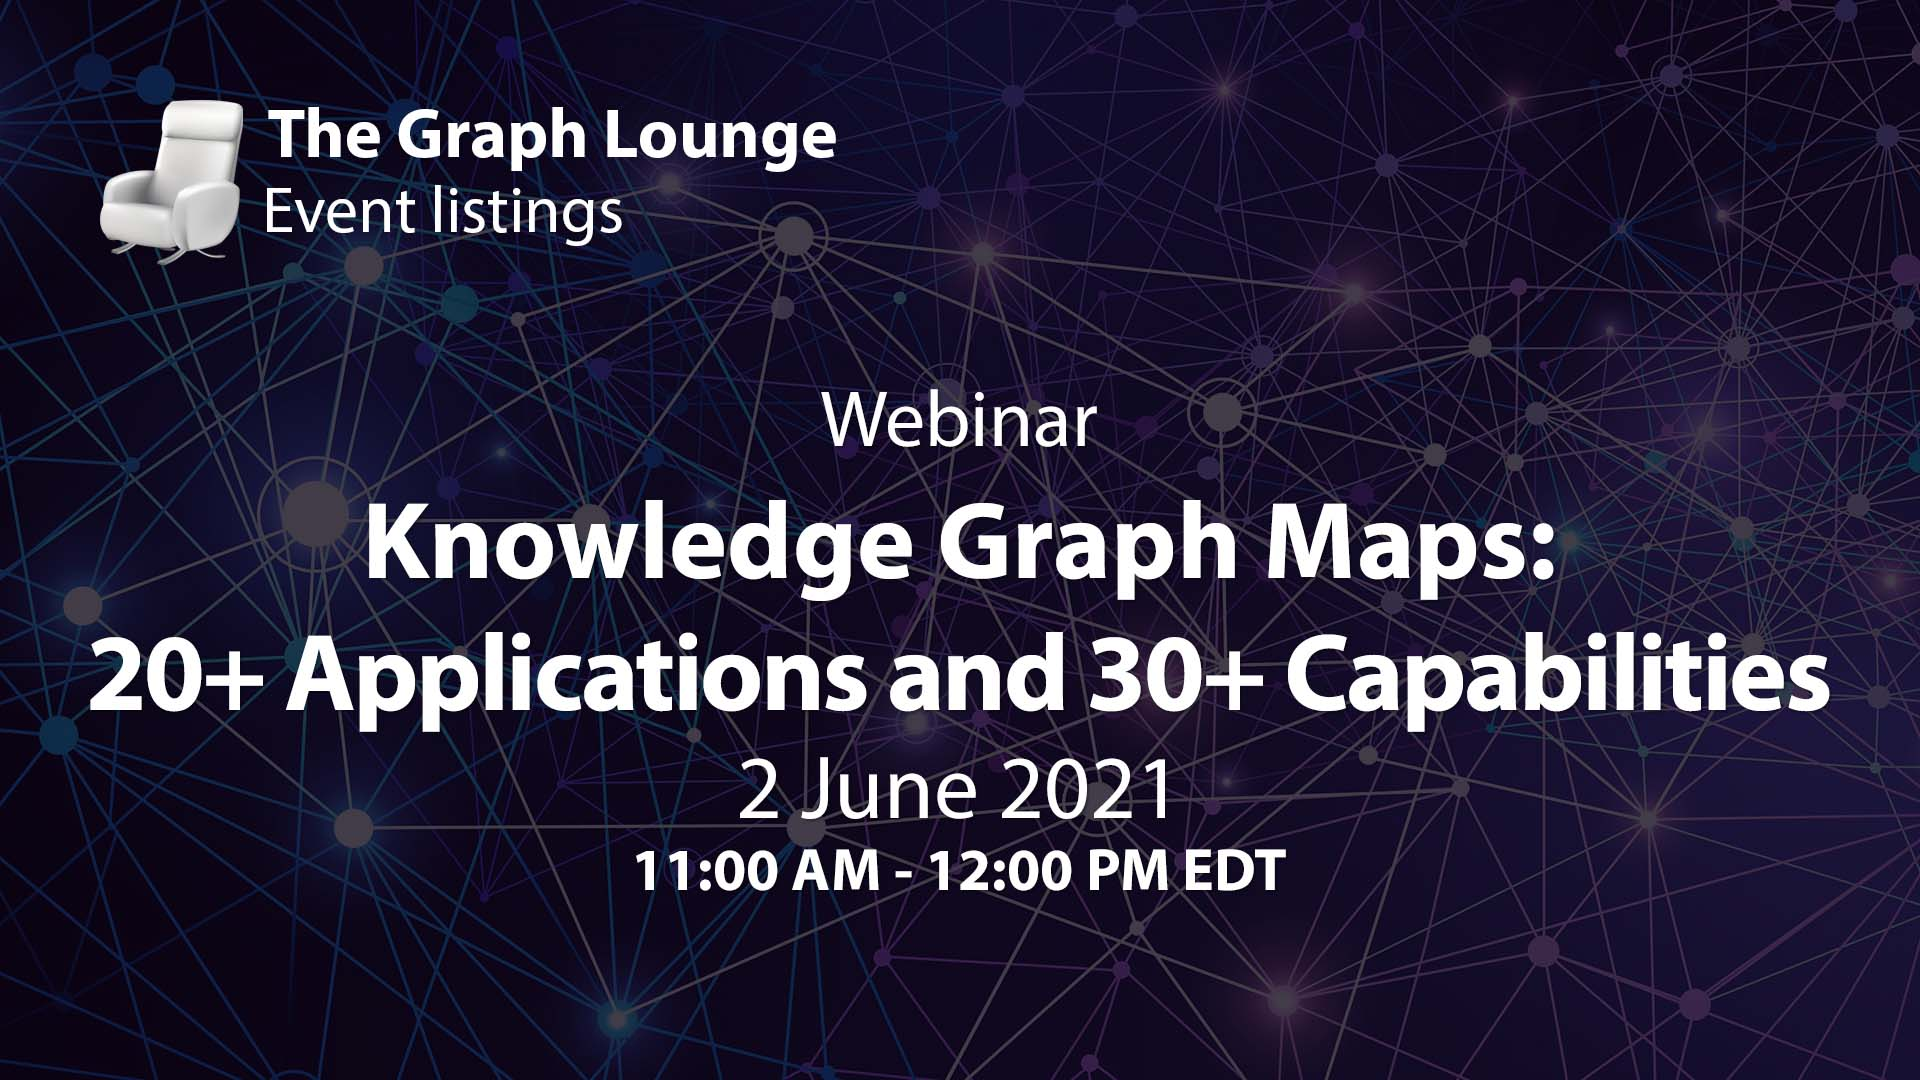 Knowledge Graph Maps: 20+ Applications and 30+ Capabilities